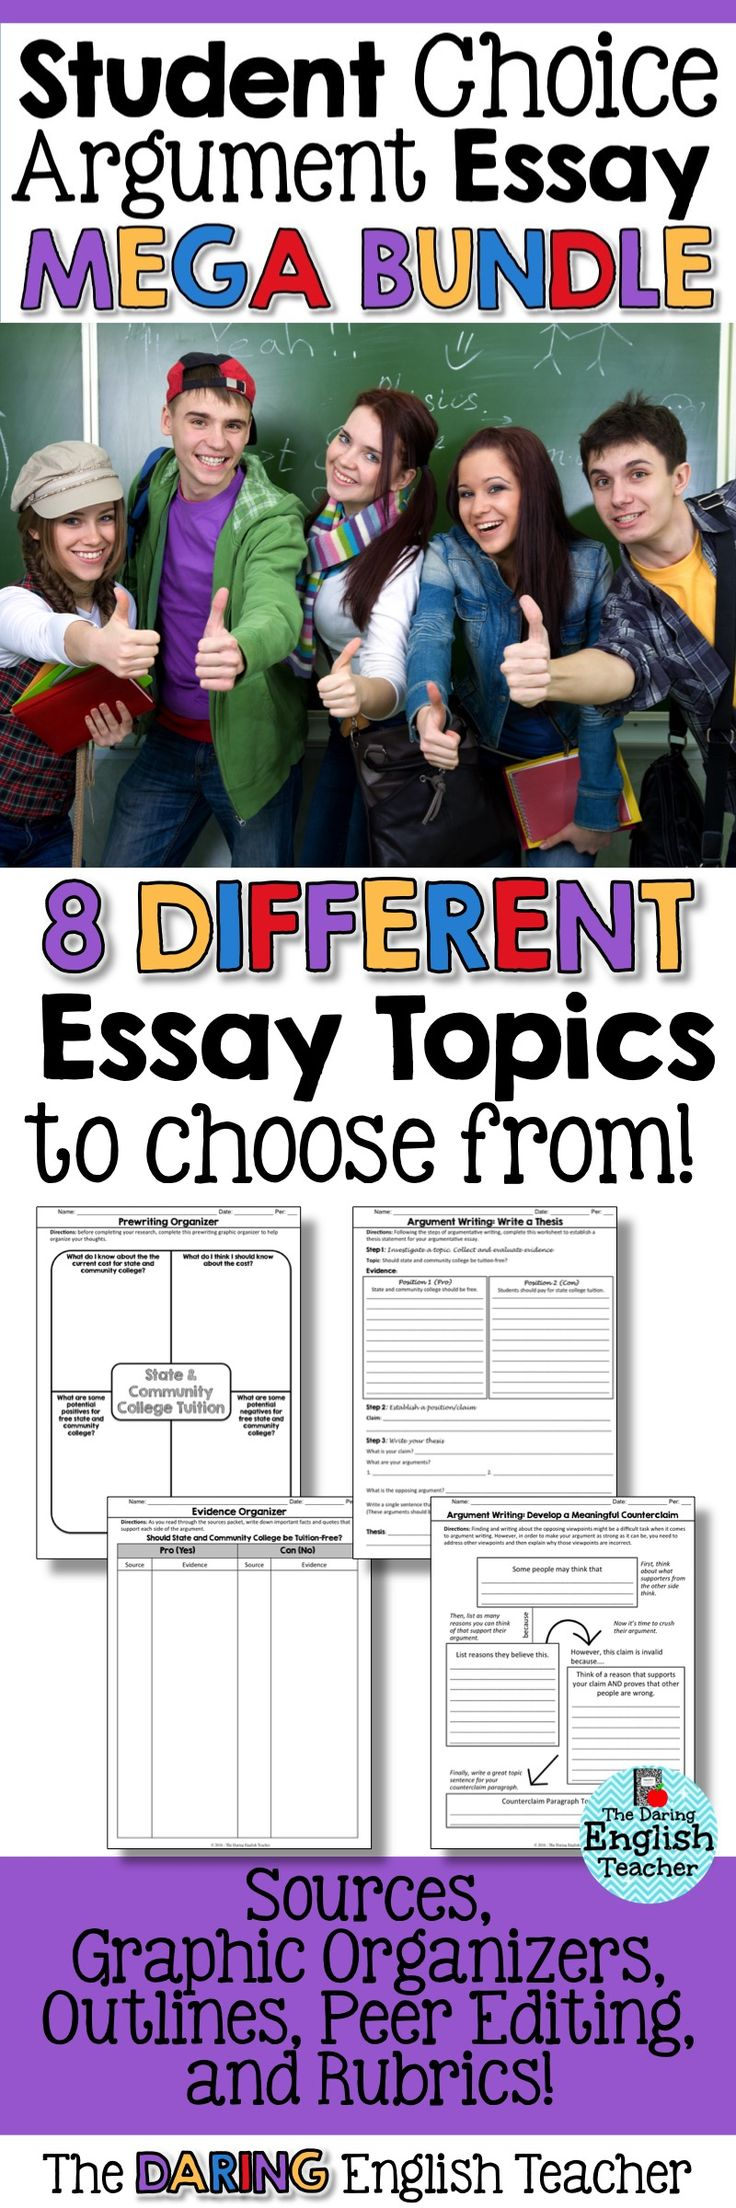 English Essay Topics For Students